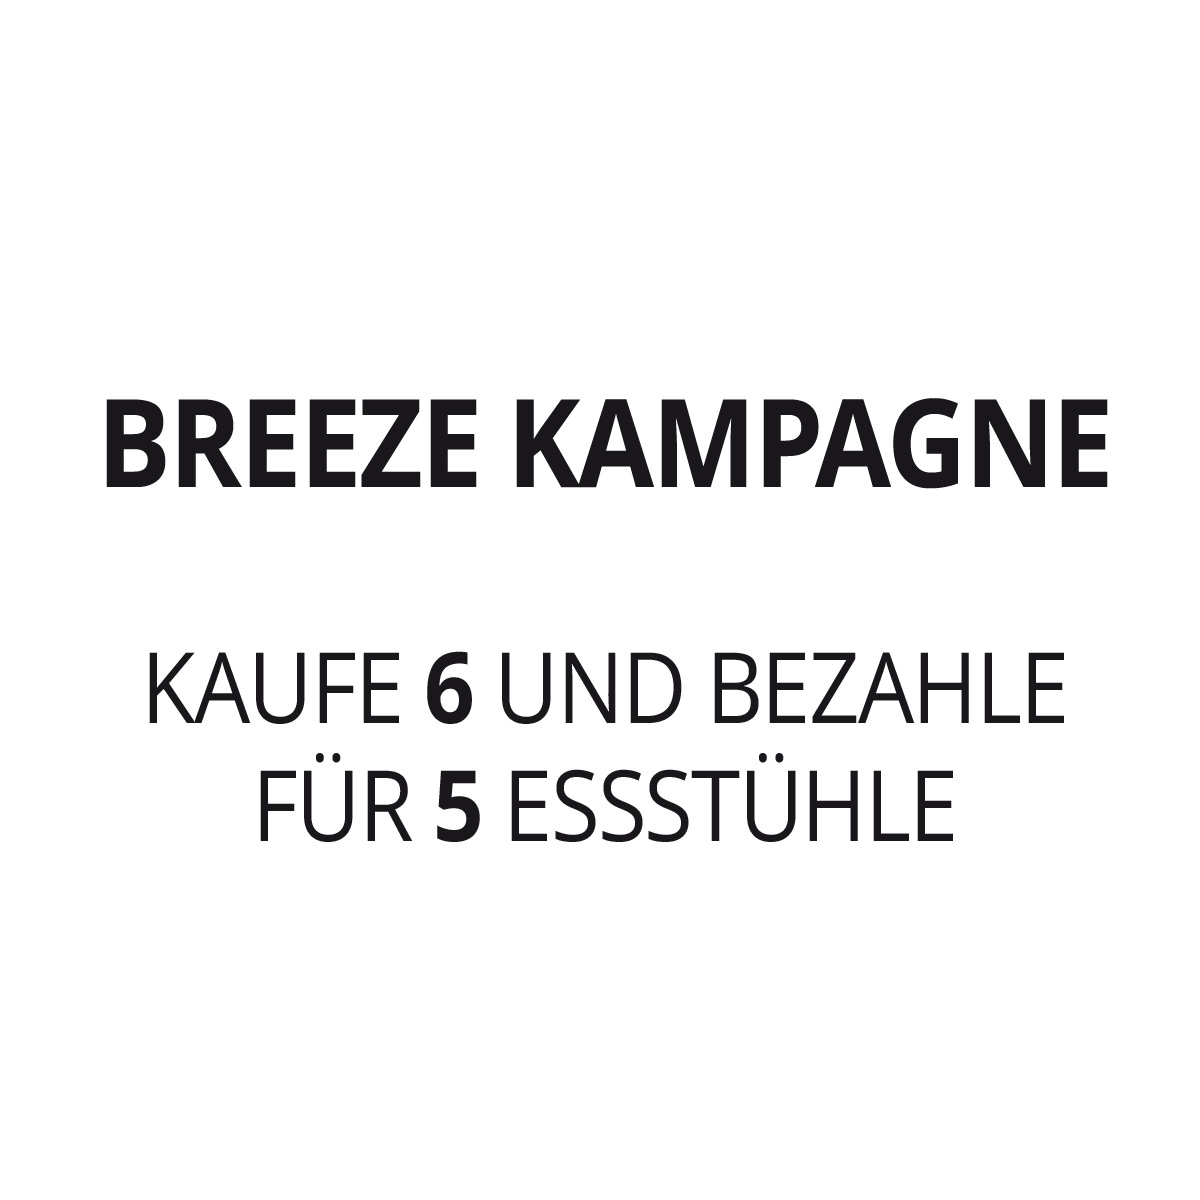 Breeze Kampagne